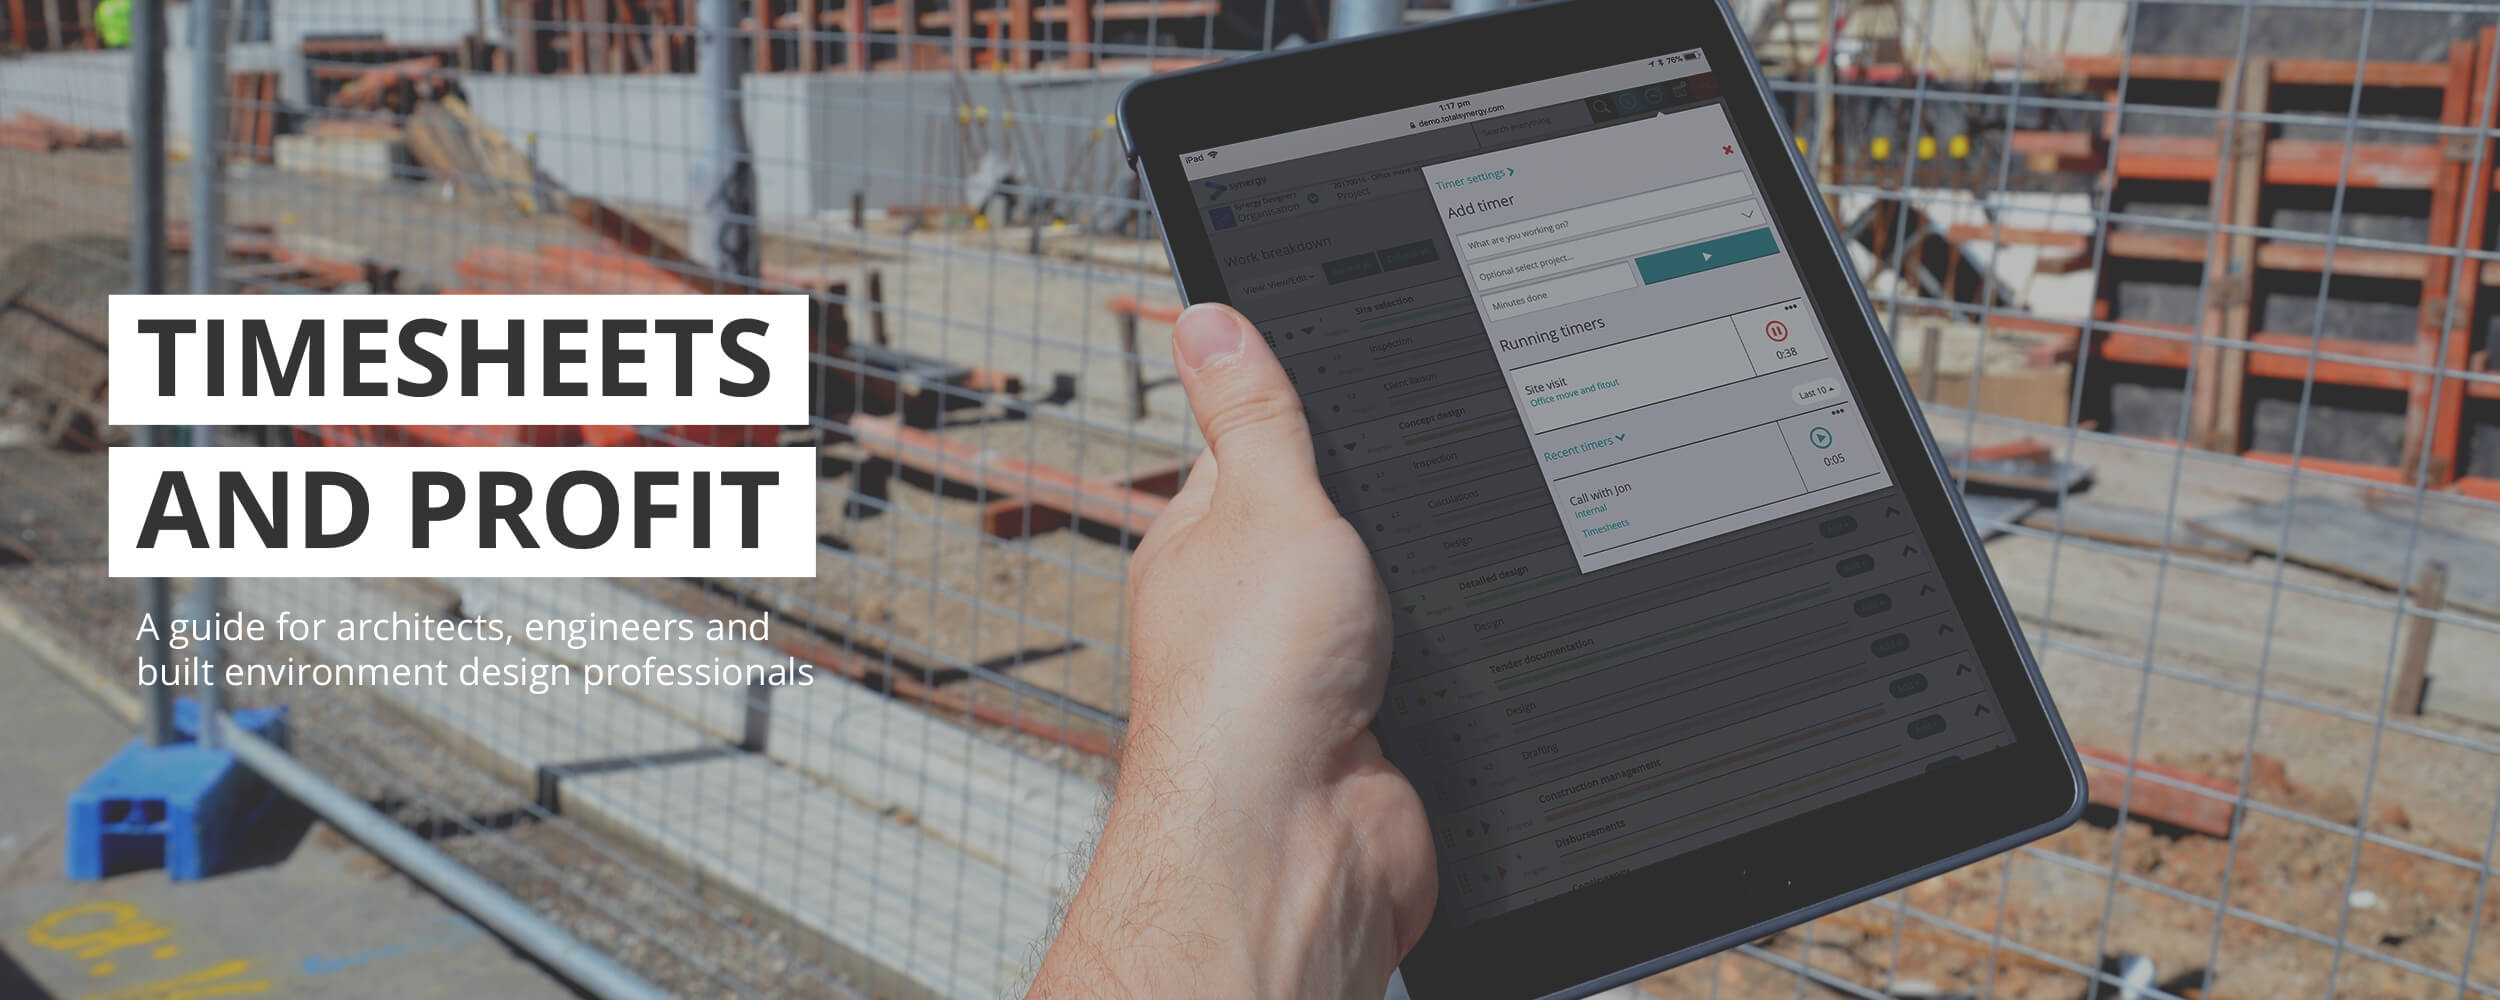 A guide to timesheets for visibility and profit for architects, engineers, and construction design professionals.